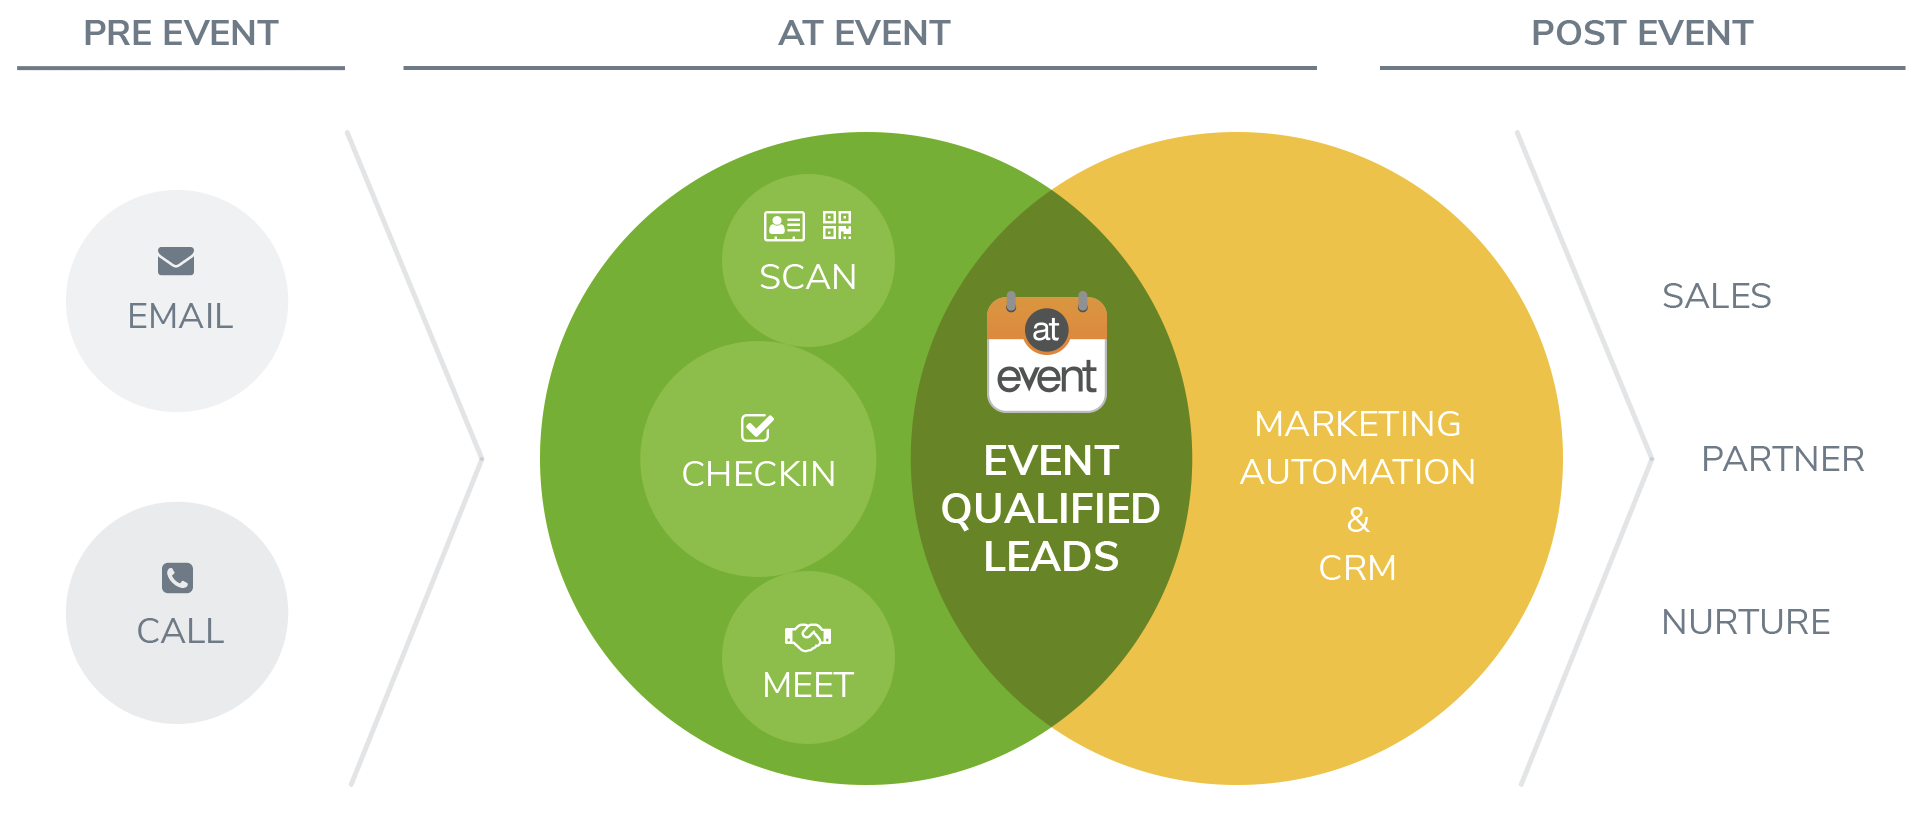 Optimize your event ROI with atEvent